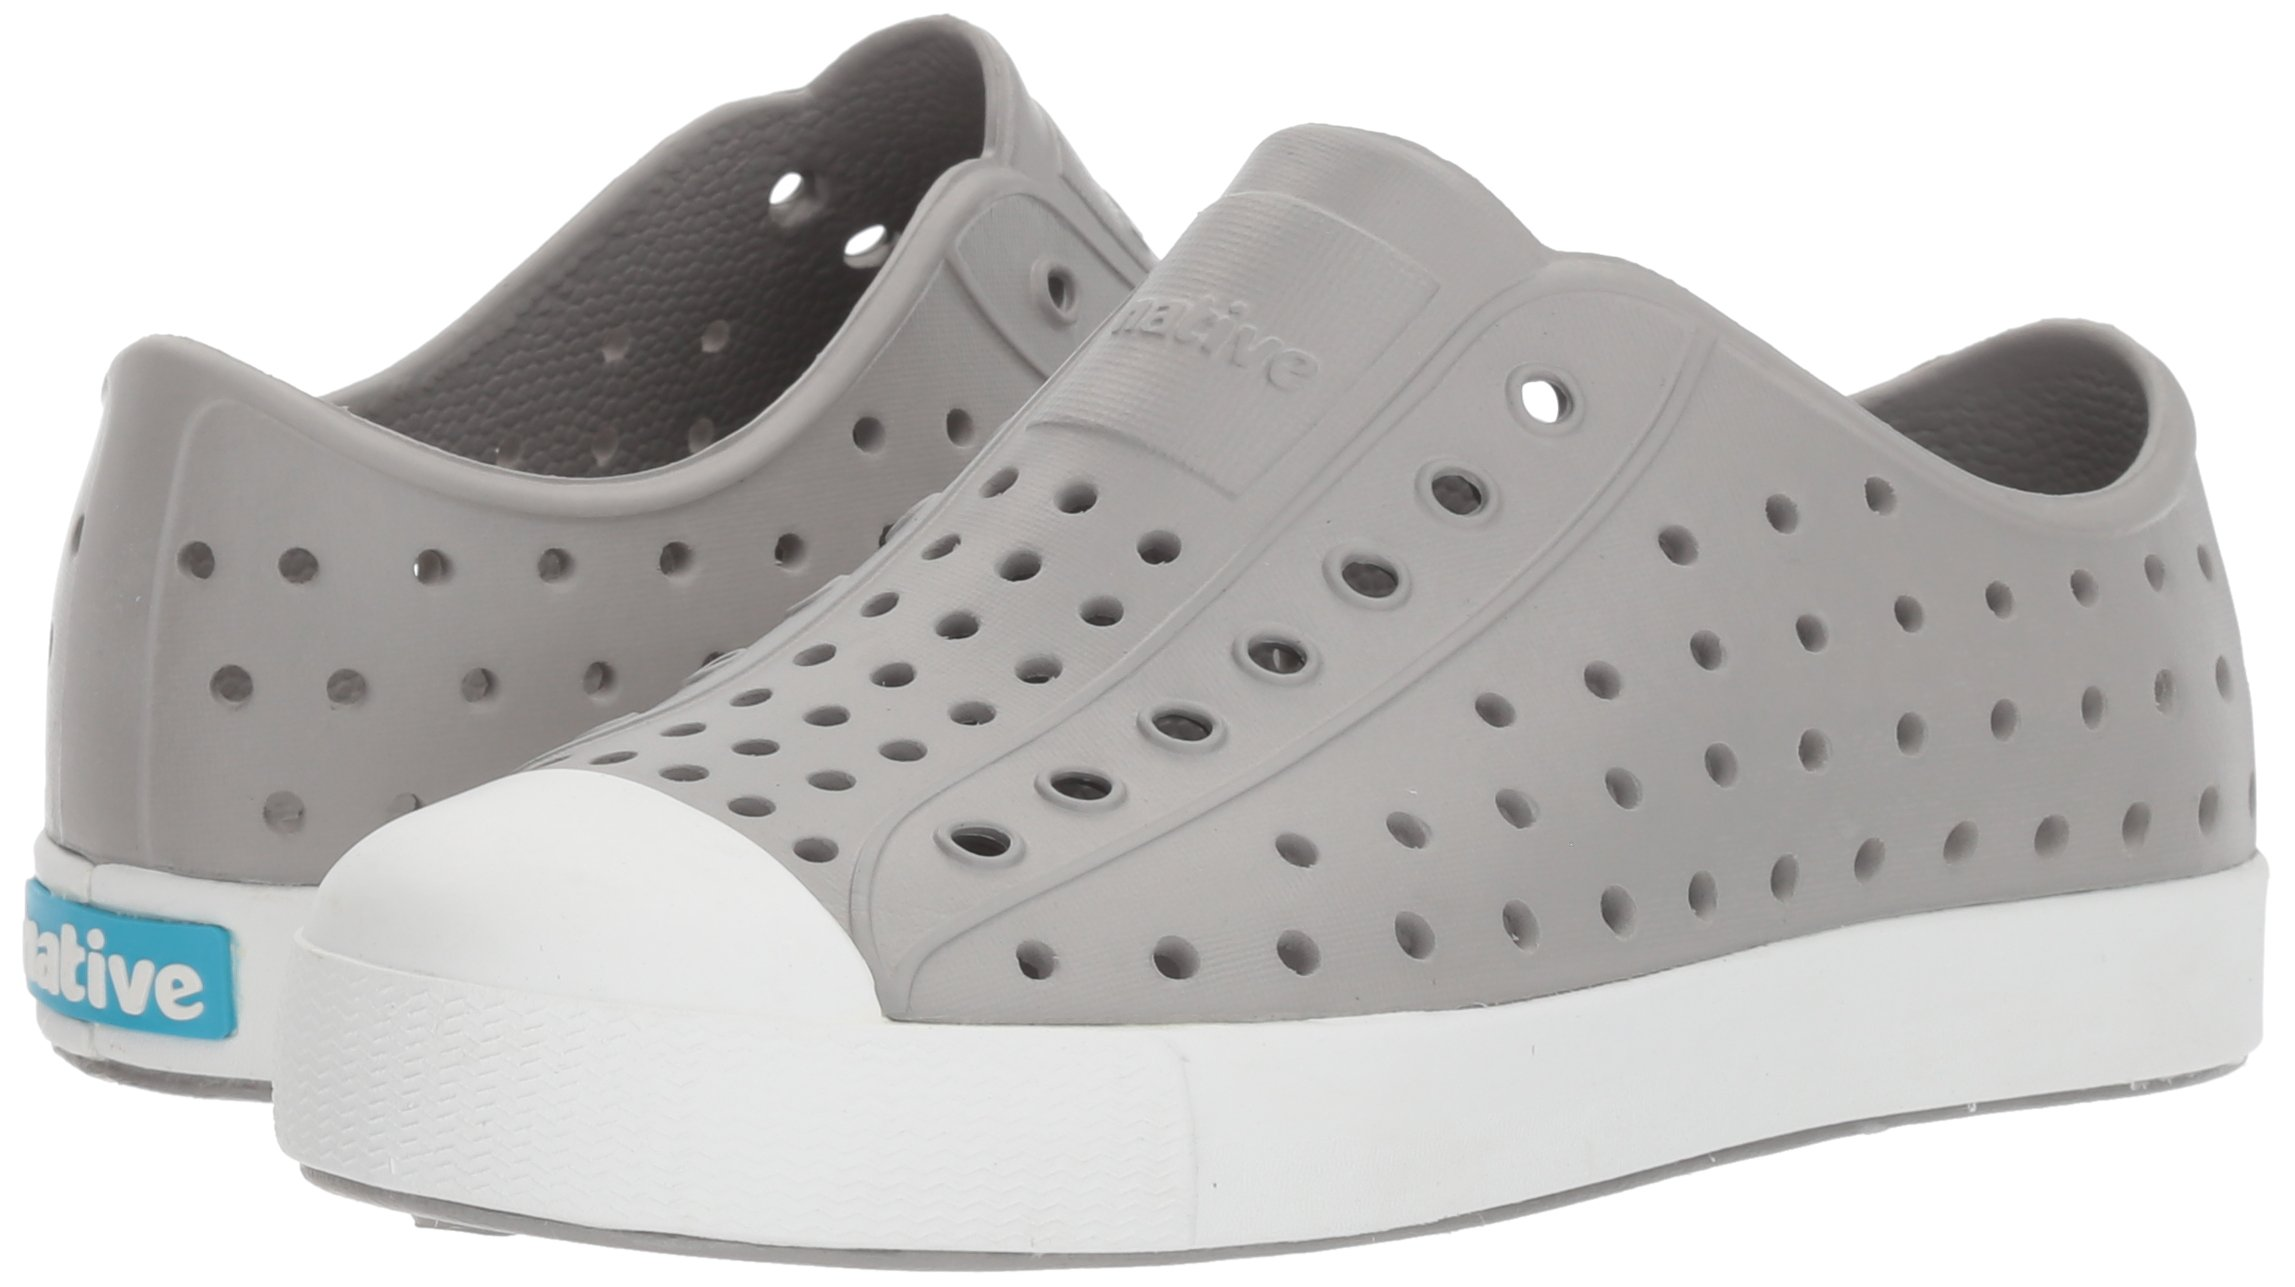 Native Kids Jefferson Junior Water Proof Shoes, Pigeon Grey/Shell White, 2 Medium US Little Kid by Native Shoes (Image #6)